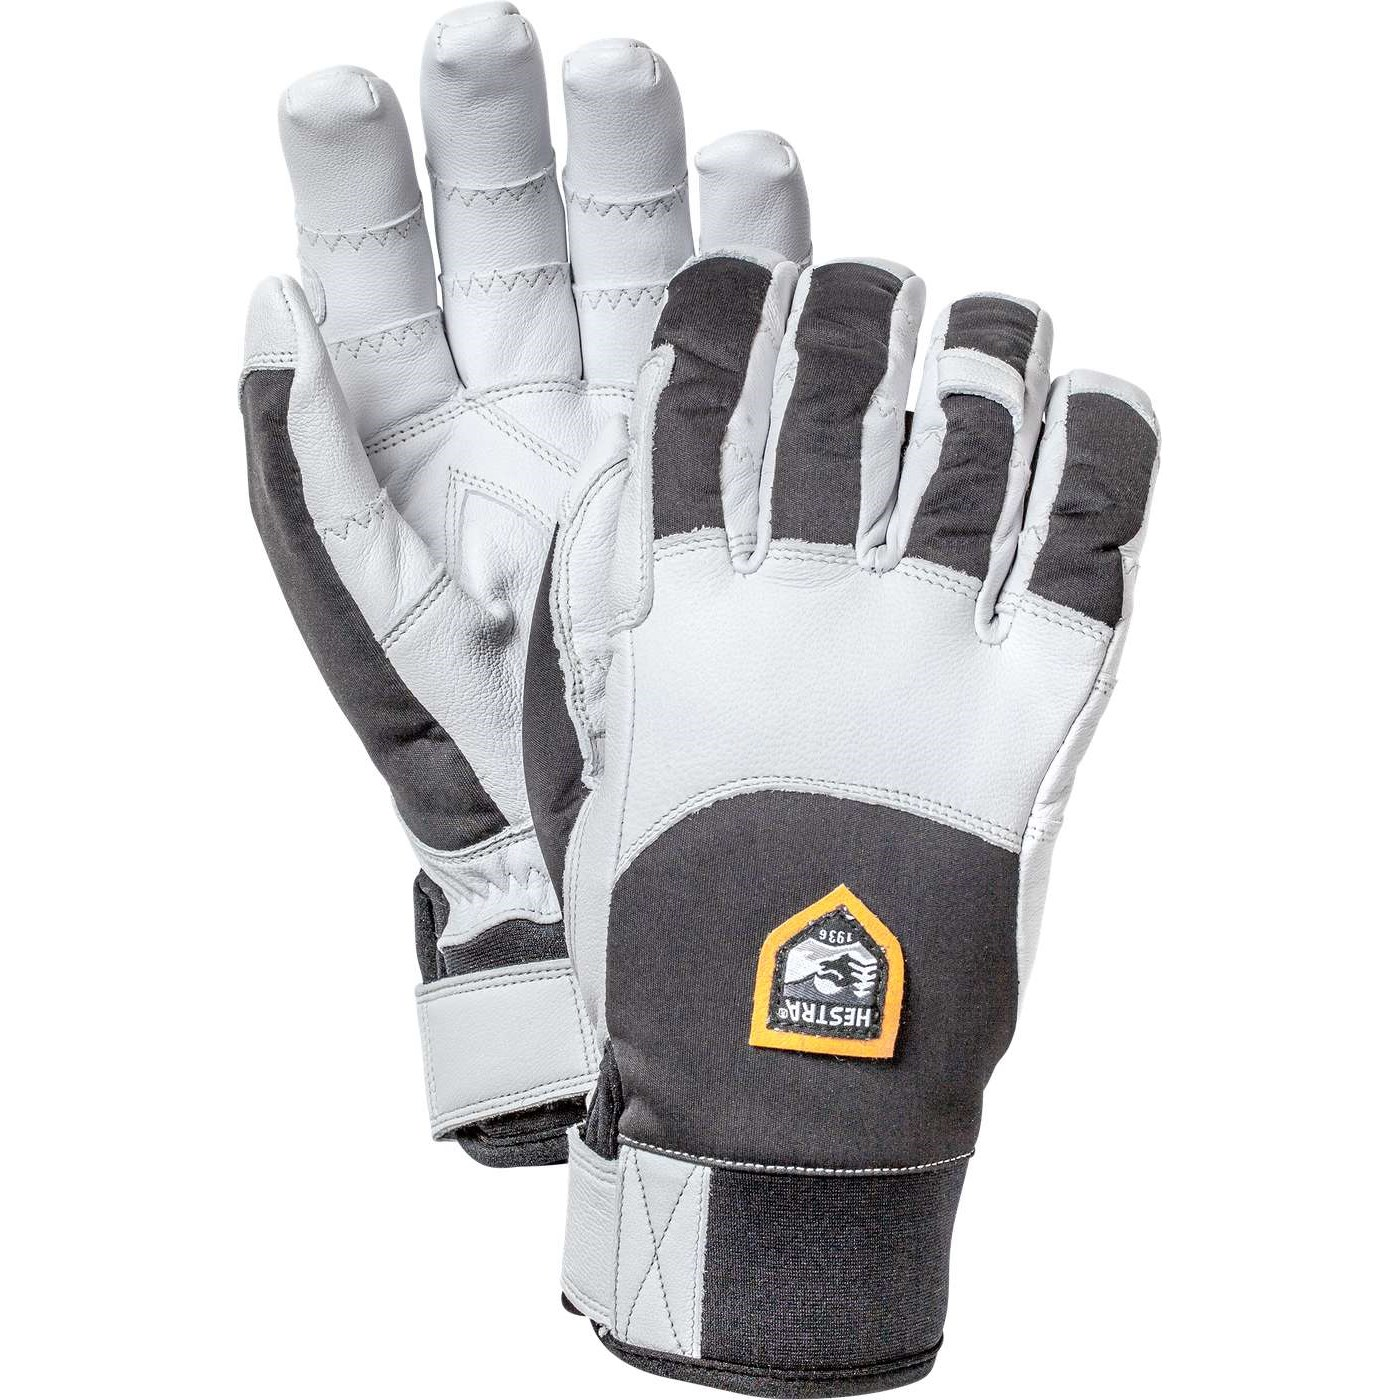 Hestra mens gloves - Hestra Mens Gloves 53